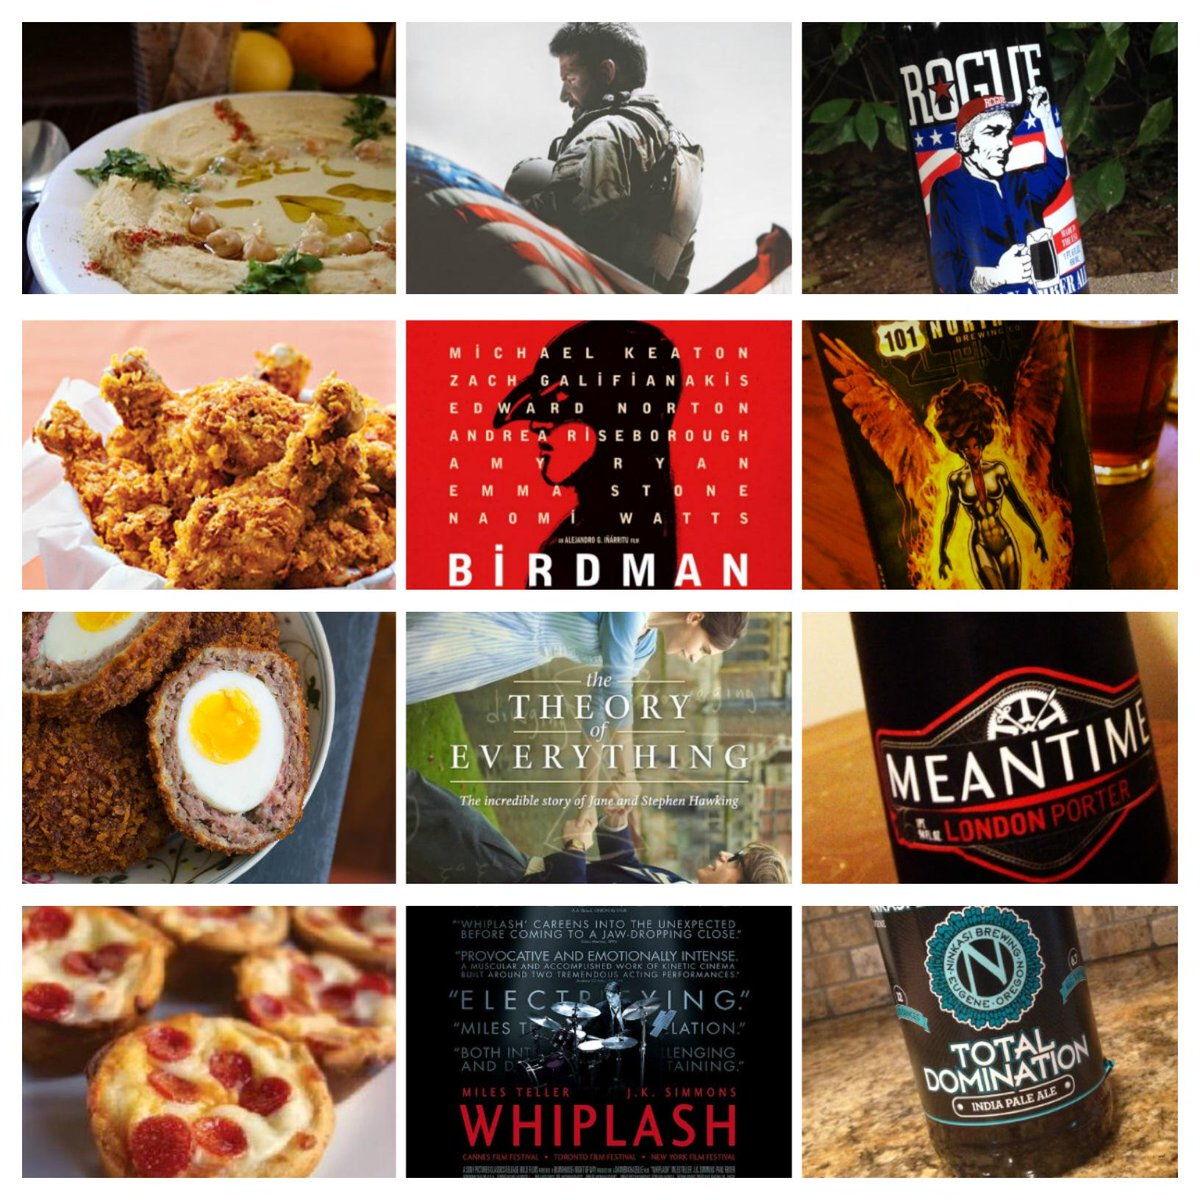 Oscars + Food + Beer Pairings to this years Oscar noms! http://t.co/BAML871nNt #craftbeer #oscarparty http://t.co/jLB8wy7xa1